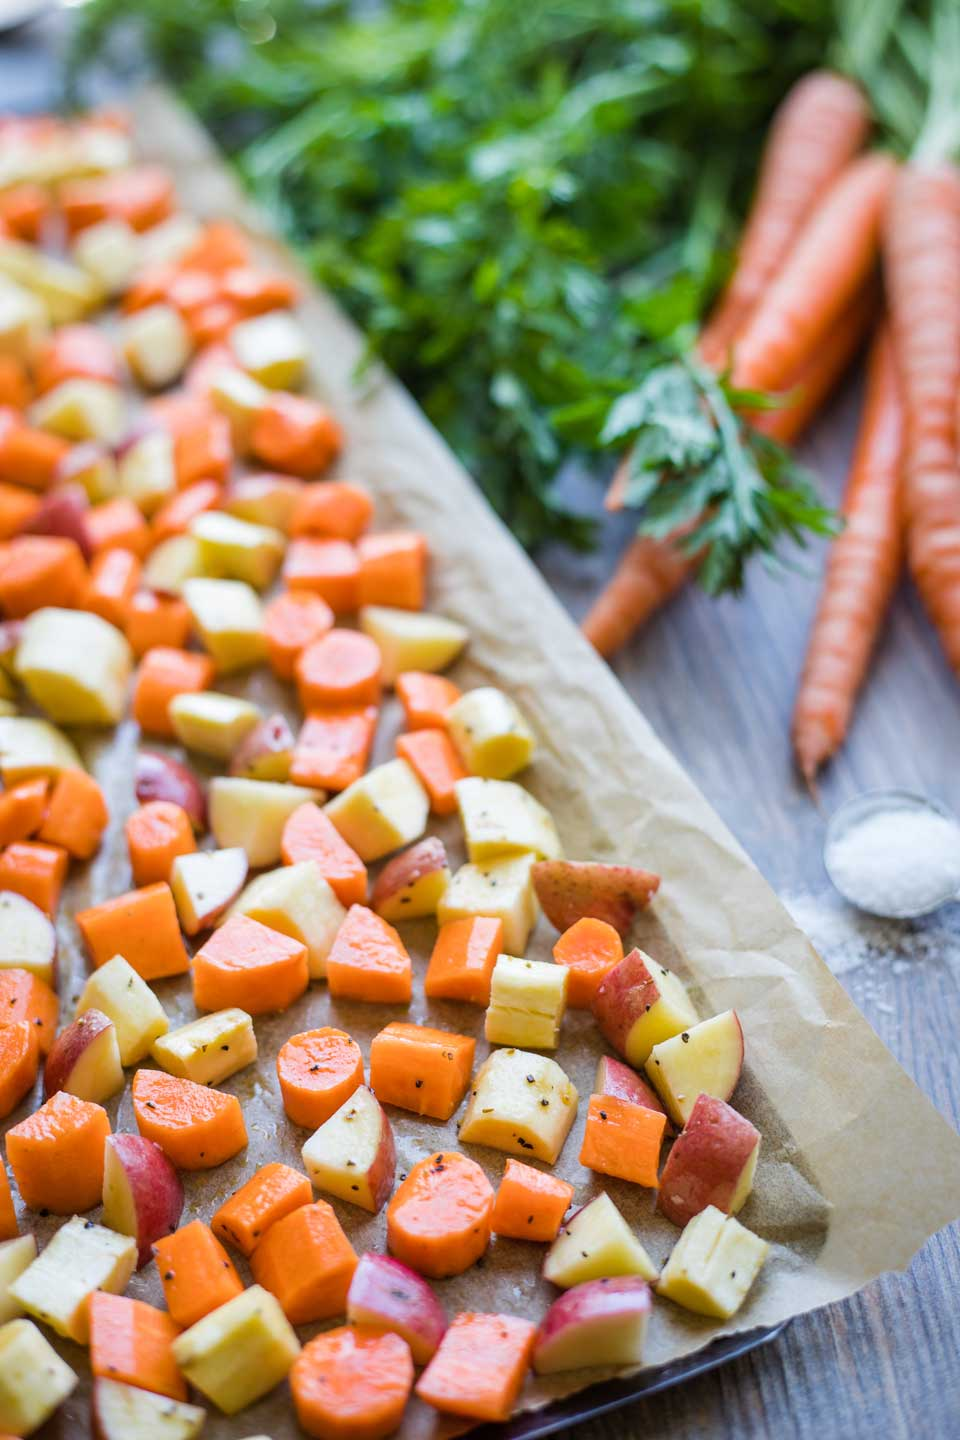 Vegetables on baking sheet, ready for the oven - spread out so they roast well